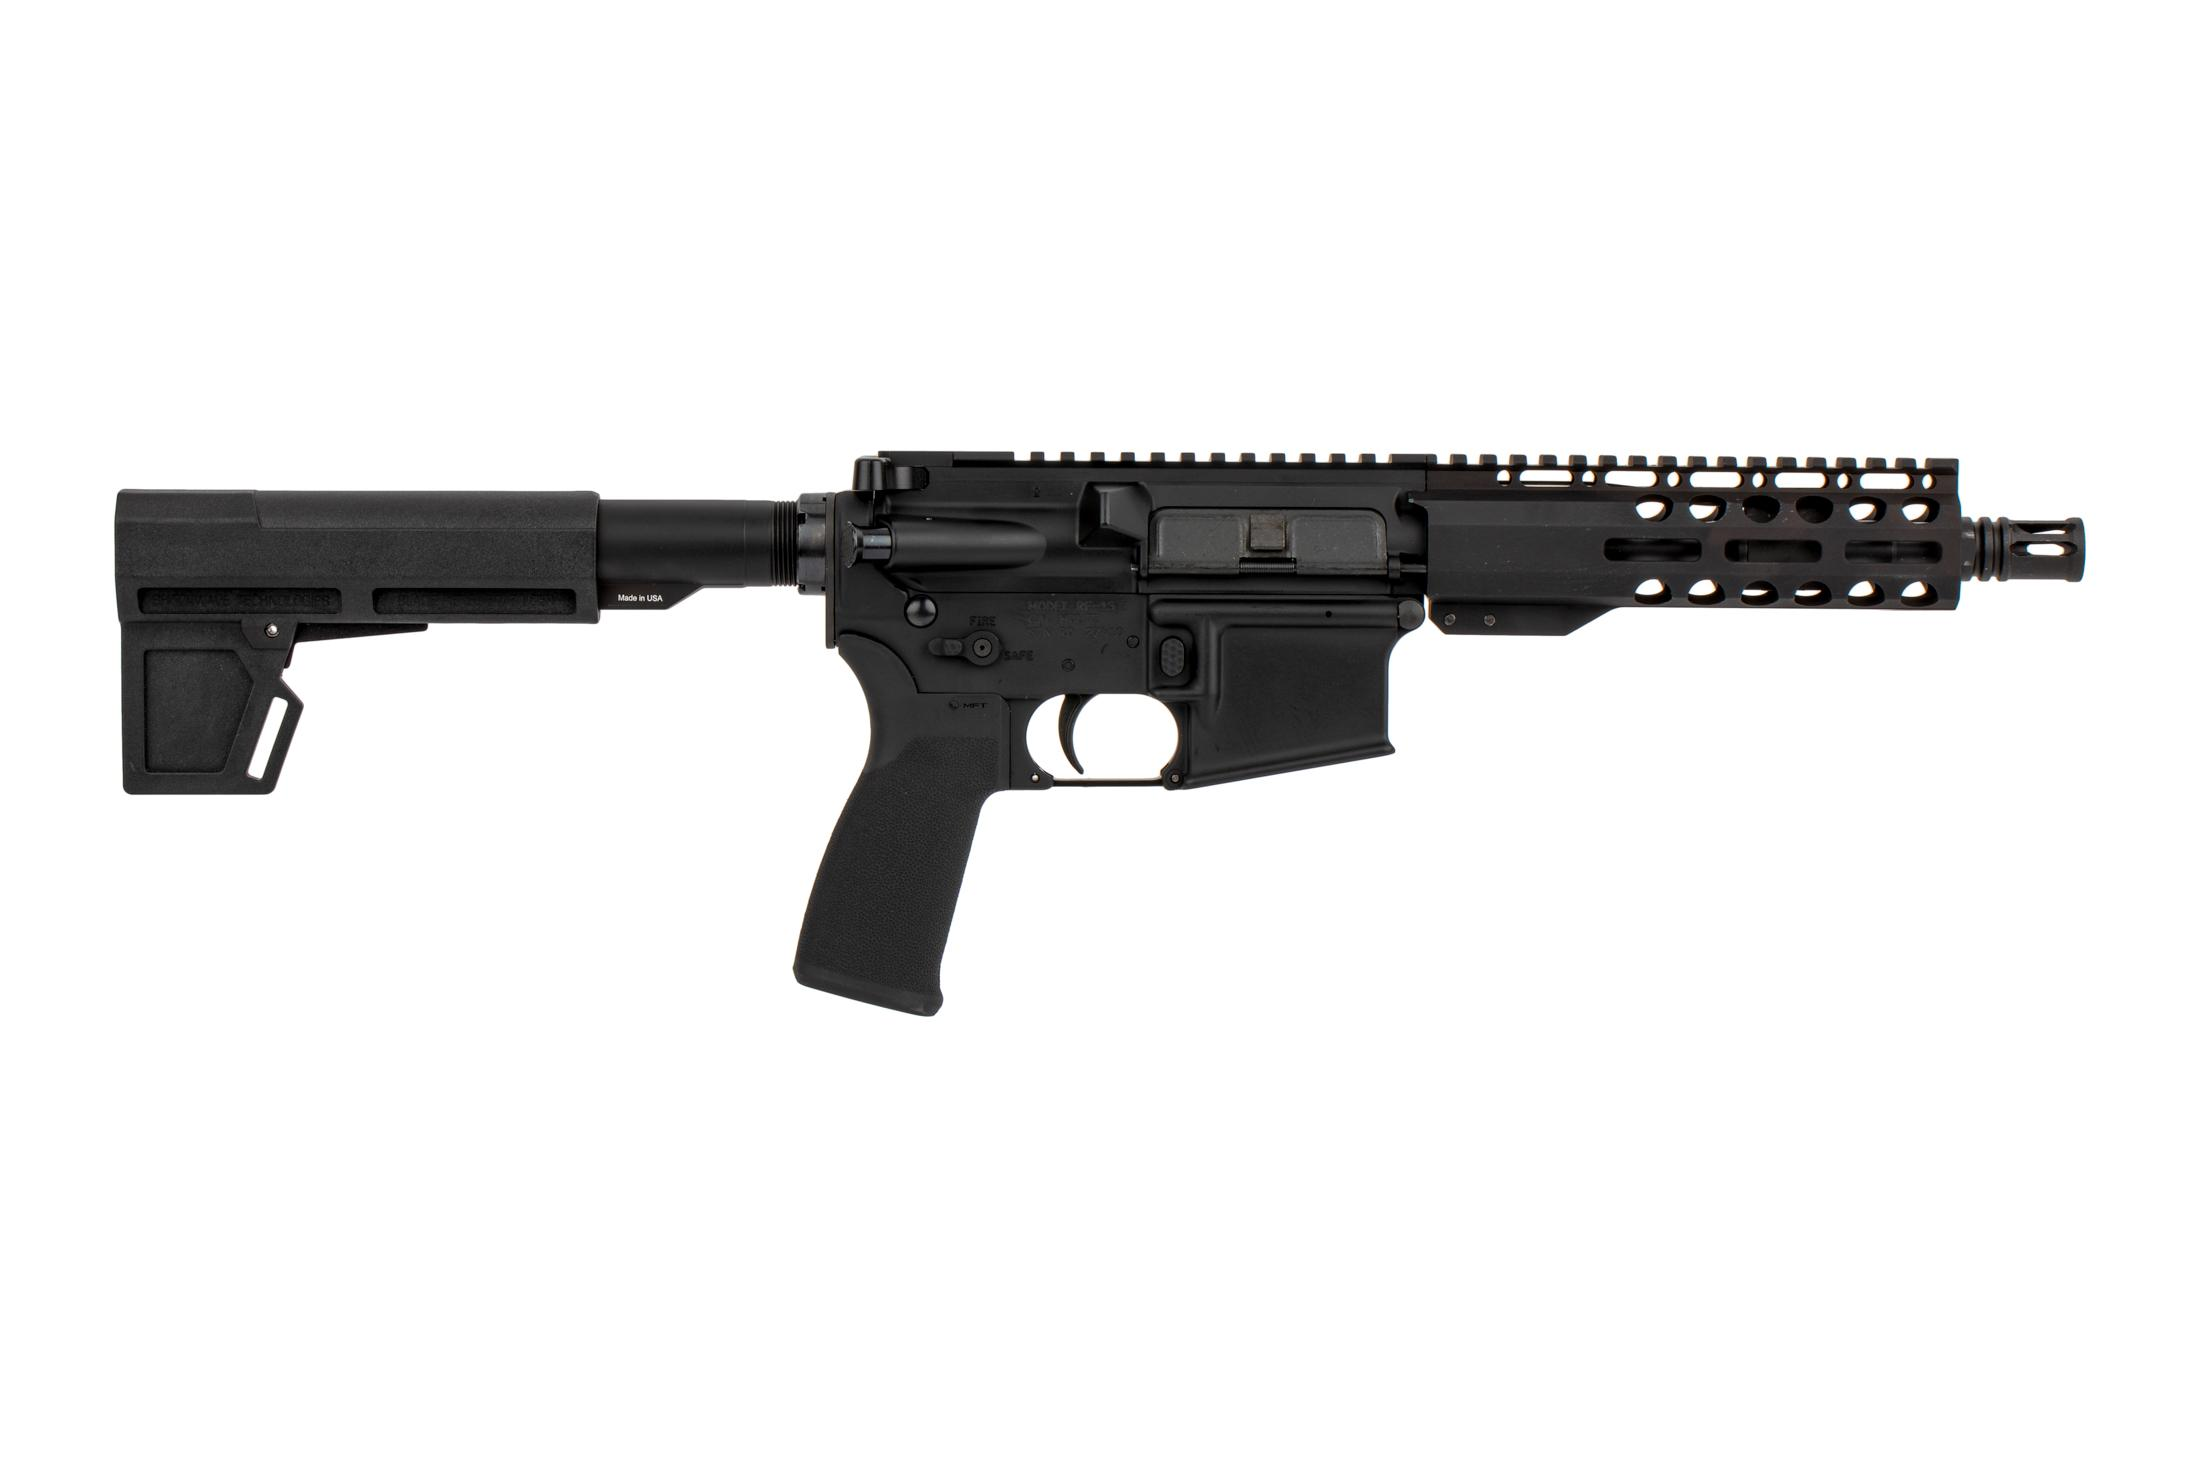 "Radical Firearms 7.5 5.56 NATO 1:7 M4 Pistol - 7"" Primary Arms Exclusive M-LOK Gen3 Rail and Shockwave 2M Blade"